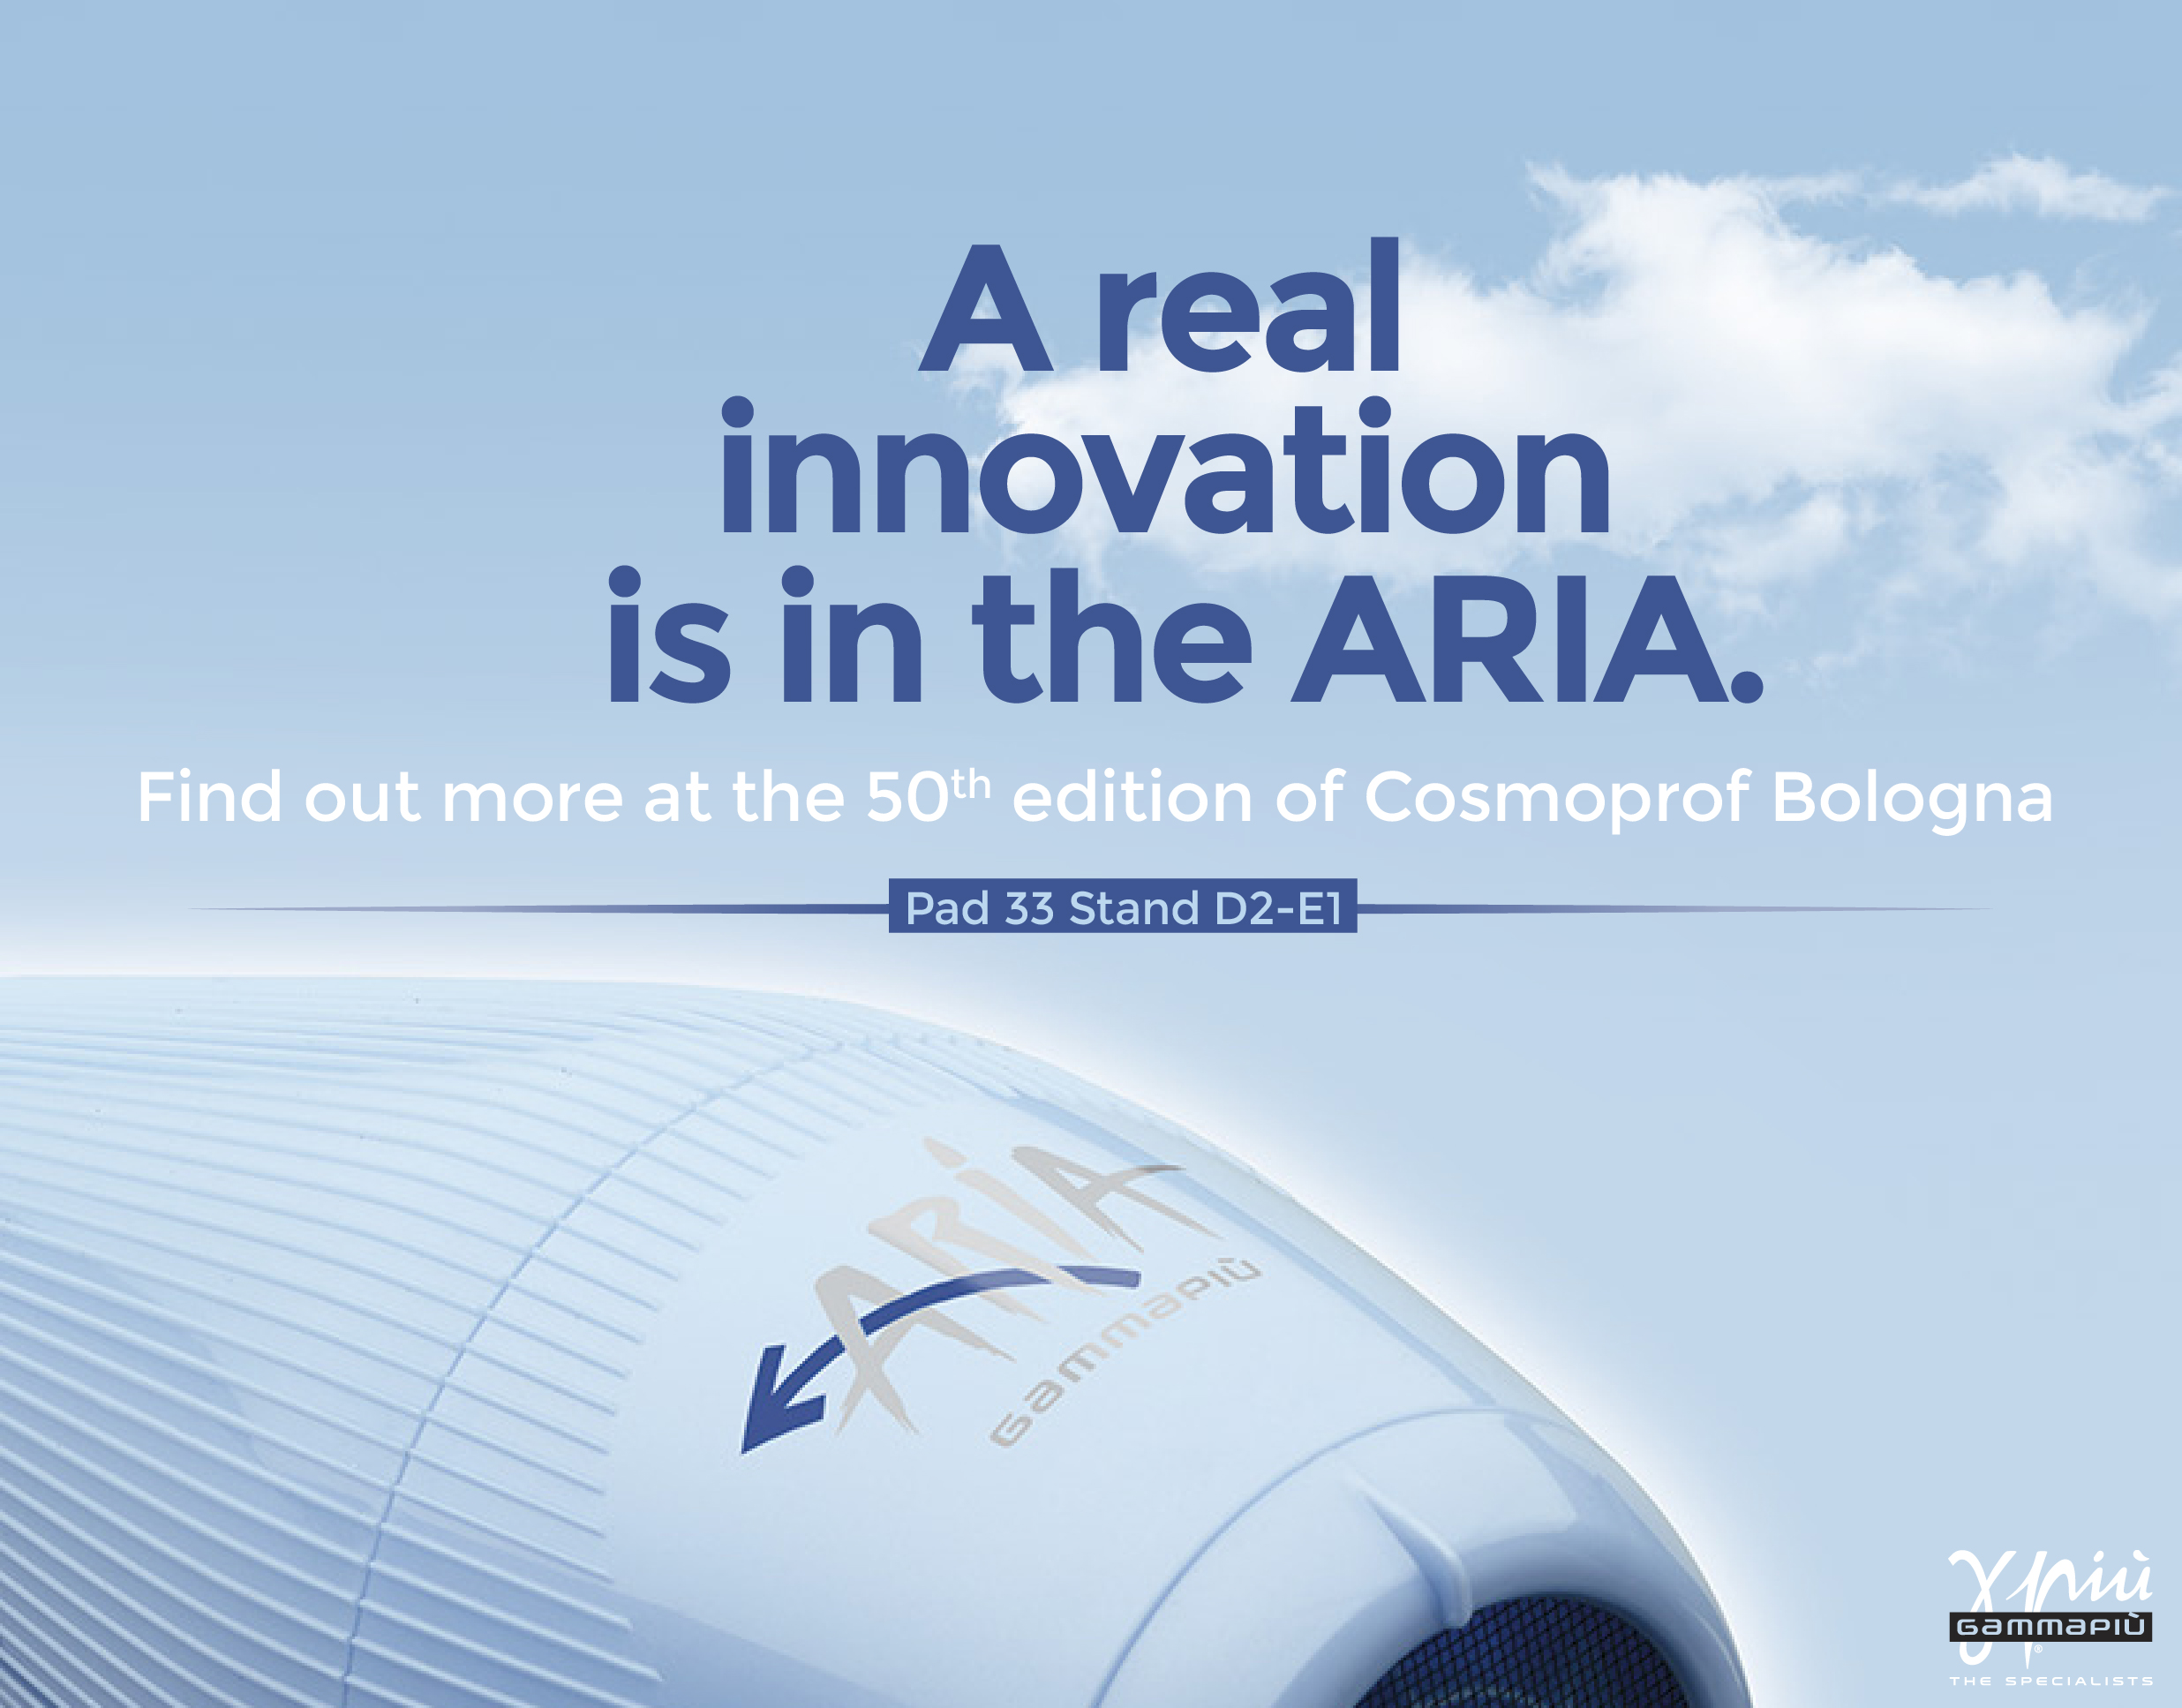 A real innovation is in the ARIA